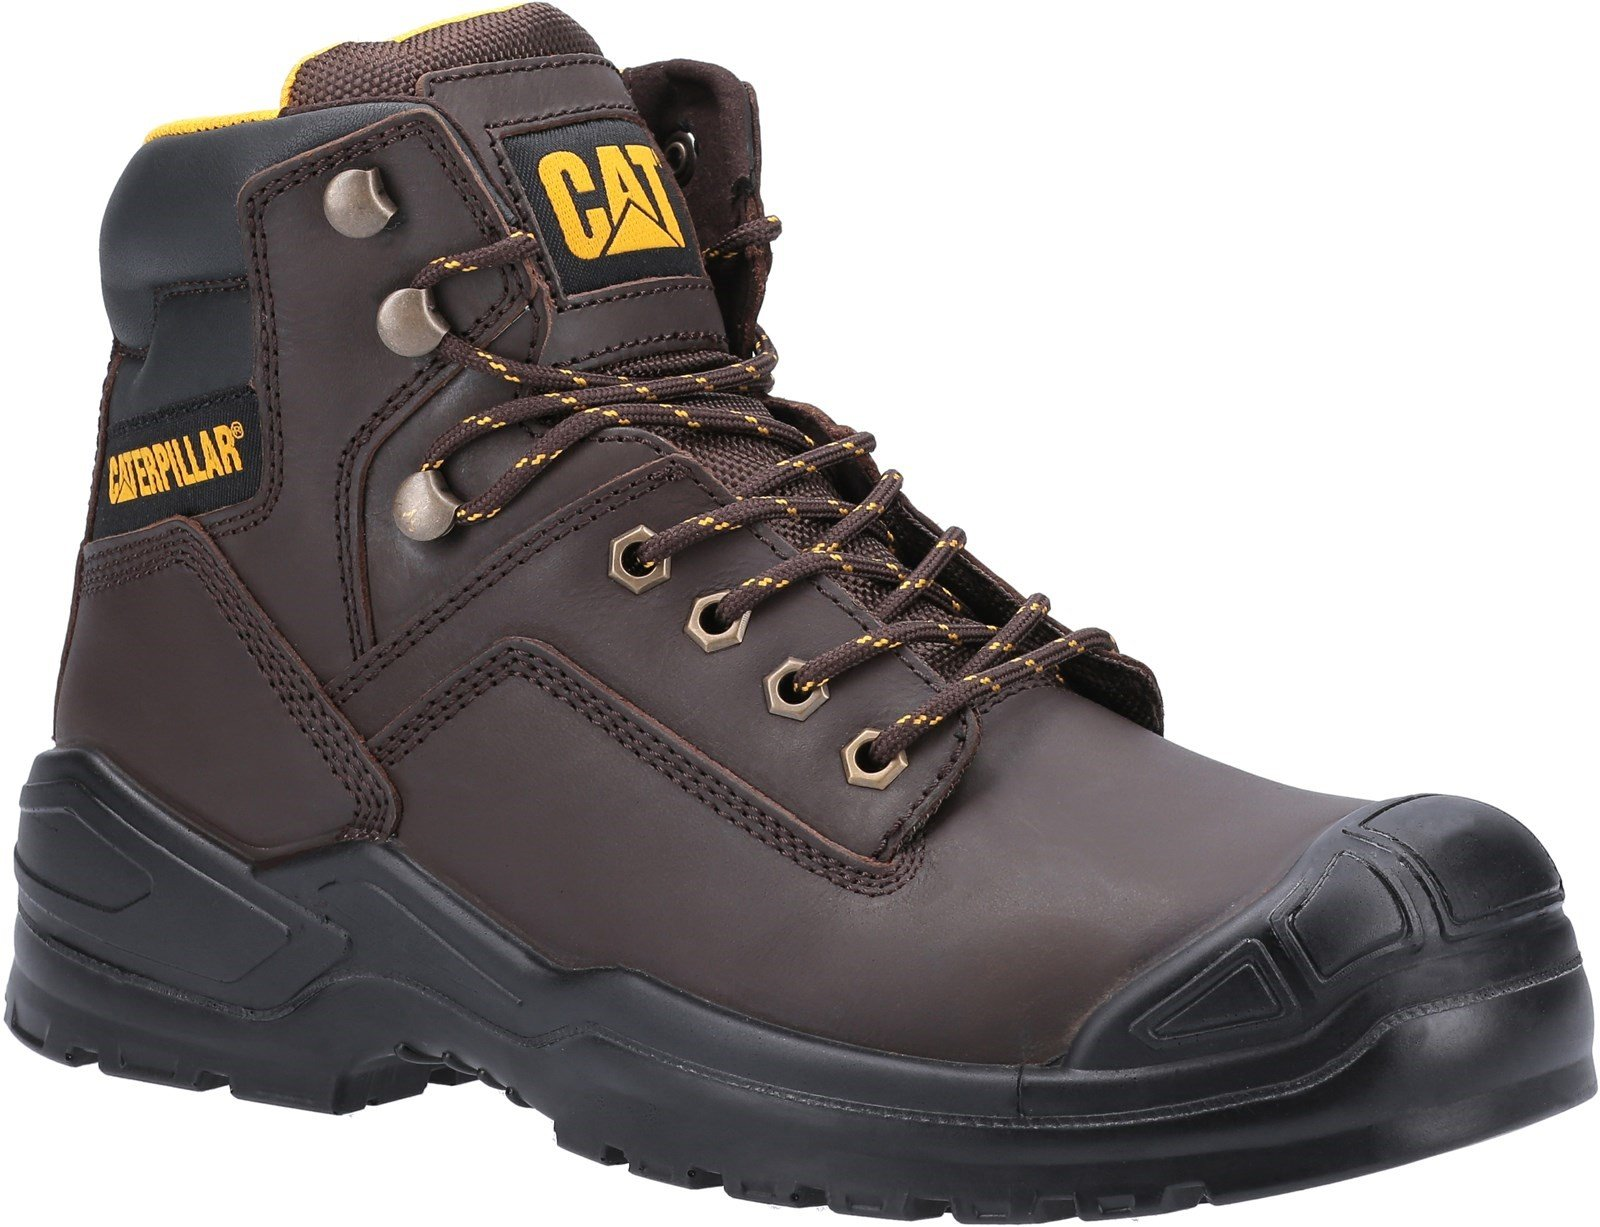 Caterpillar Unisex Striver Mid S3 Safety Boot Various Colours 31900 - Brown 6